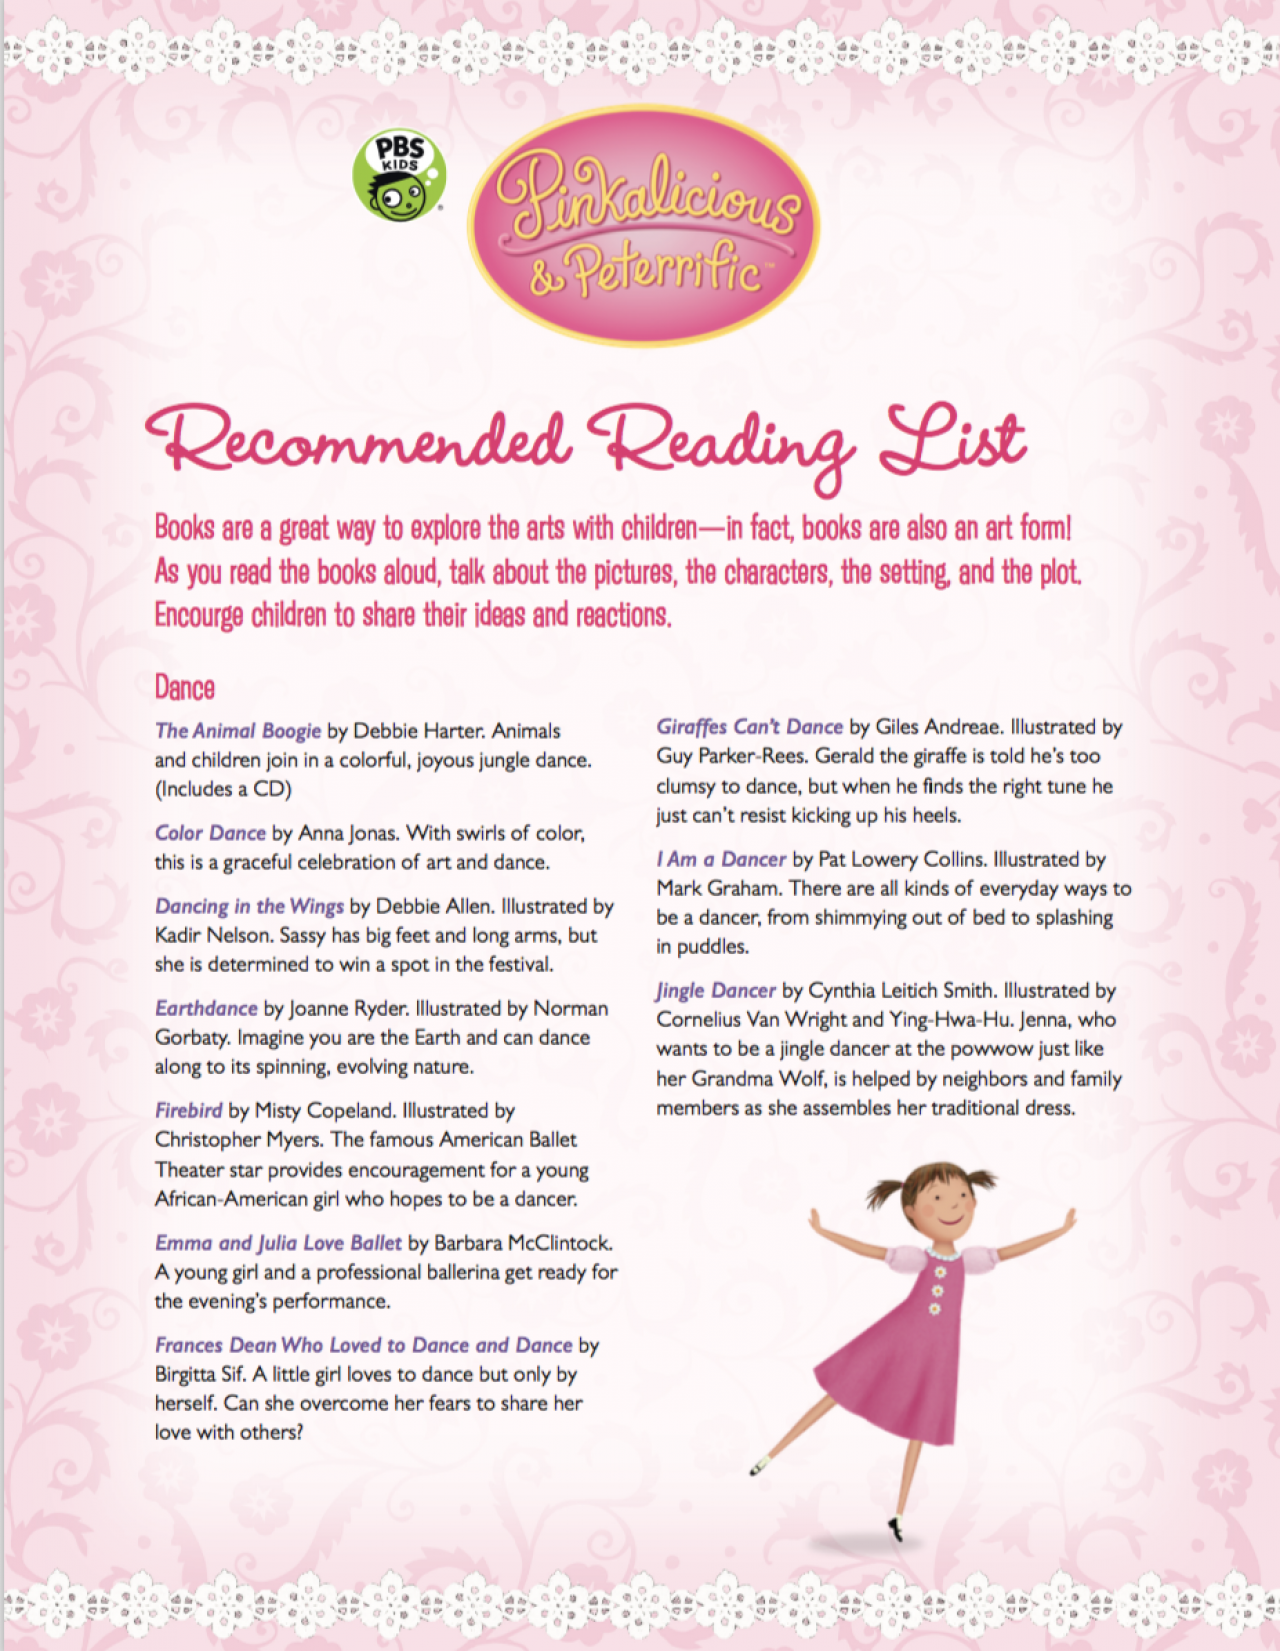 Pinkalicious Recommended Reading List